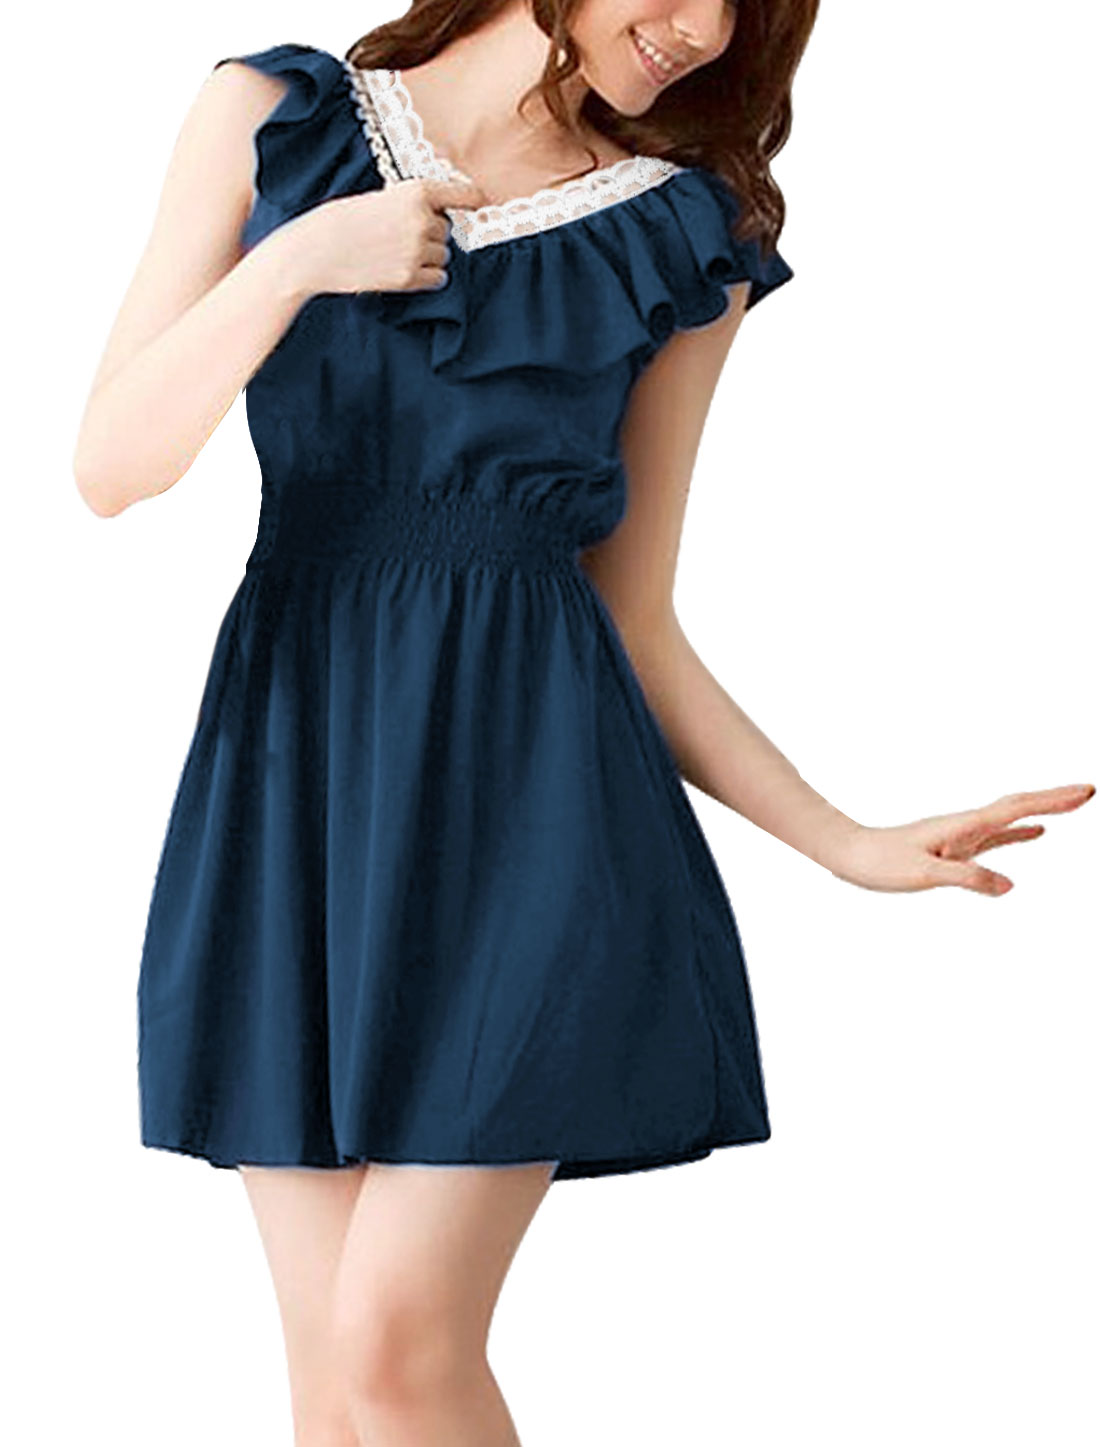 Stylish Dark Blue Flouncing Detail Upper Lined Mini Dress for Lady L